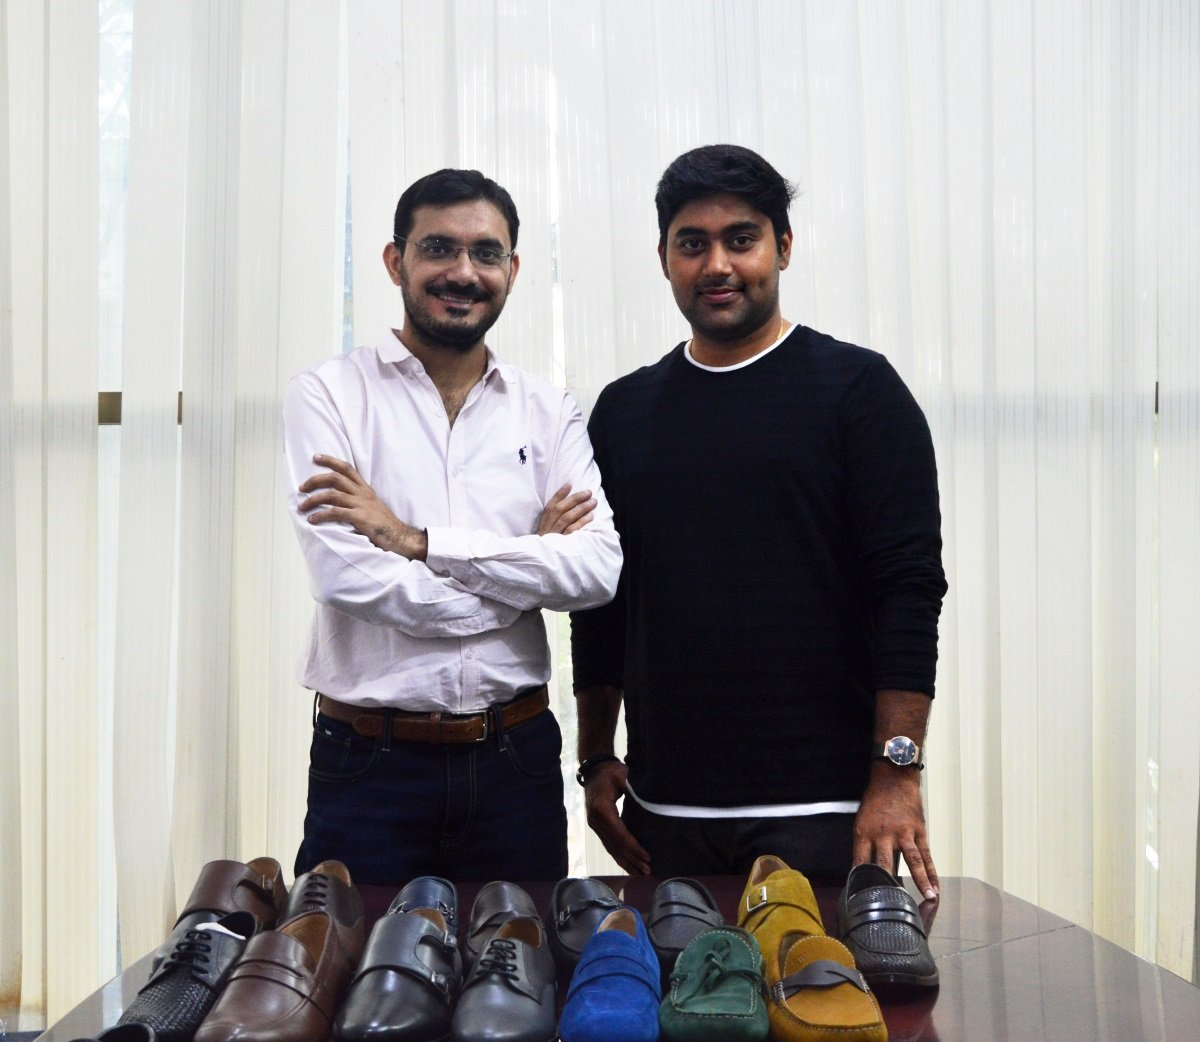 Rapawalk raises $3,00,000 in Seed Round from Inflection Point Ventures 23